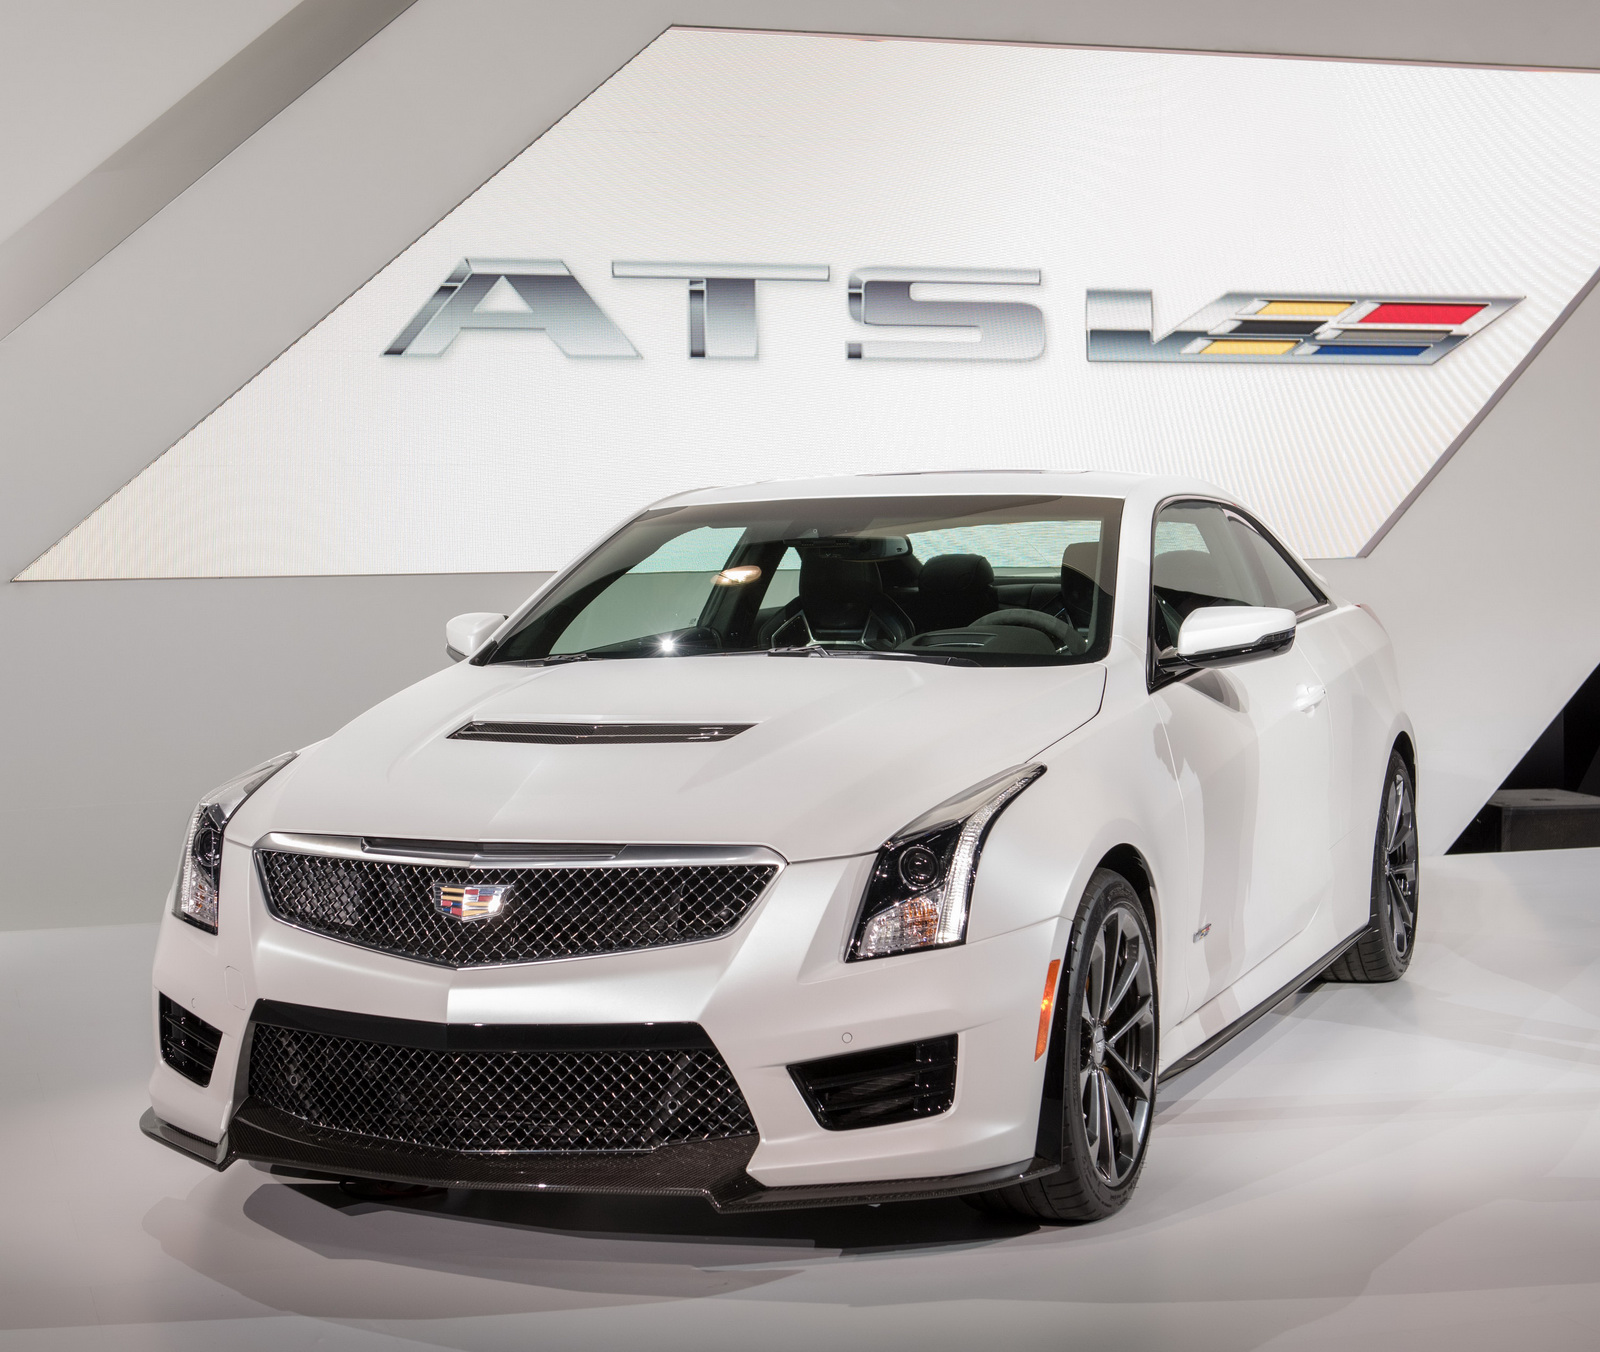 Cadillac Ats Coupe >> 2016 Cadillac ATS-V Makes 464HP, Hits 0-60 in 3.8 Seconds ...